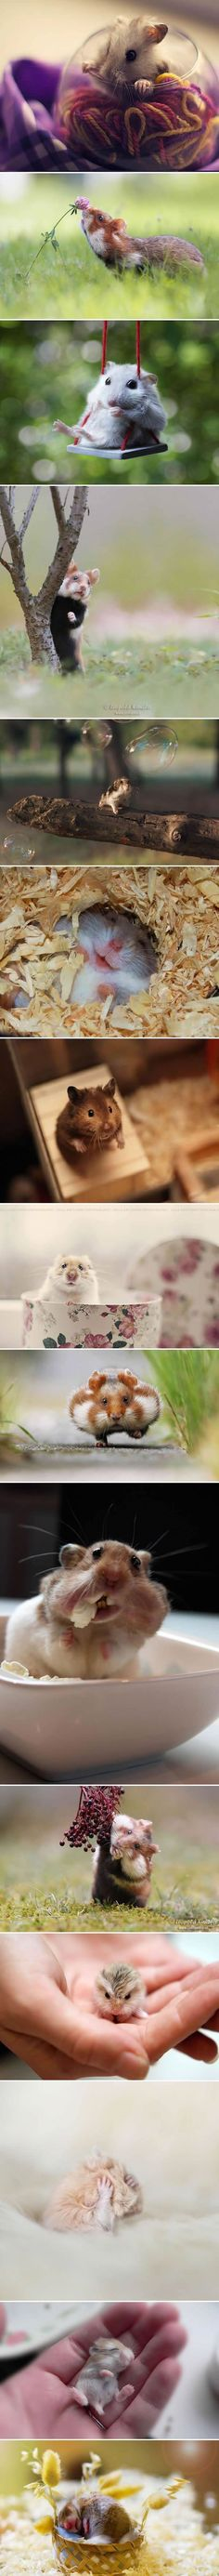 Adorable hamsters